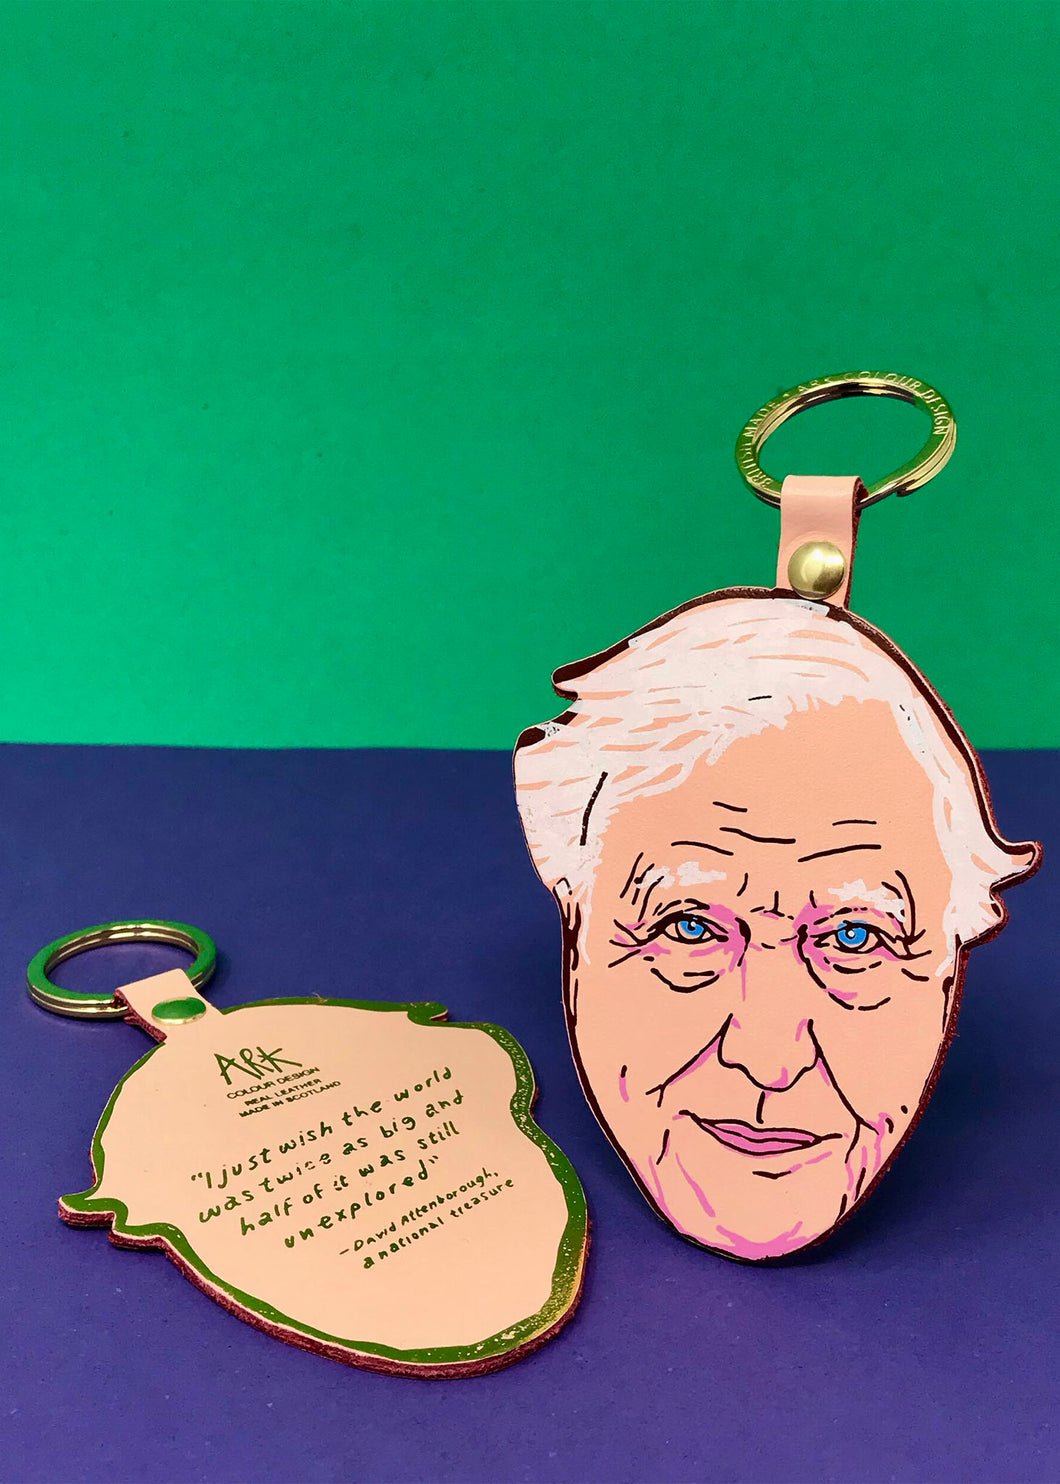 Ark David Attenborough Key Fob